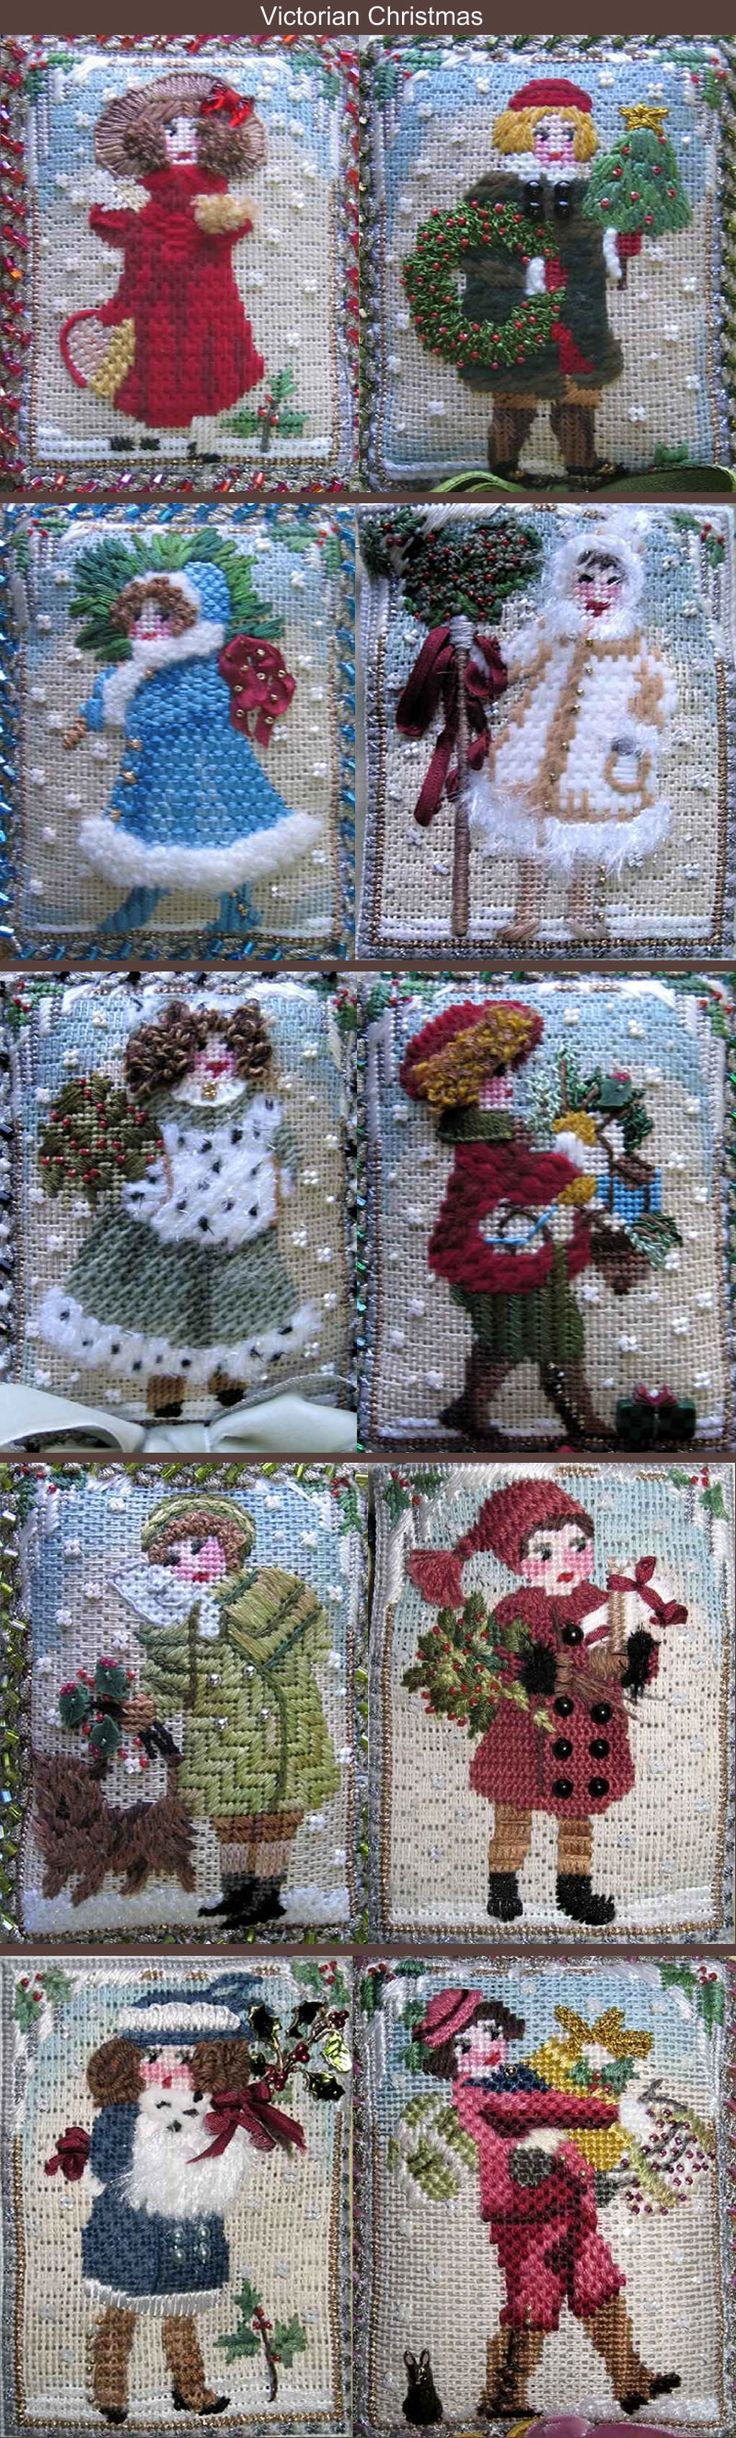 Sally Anne and I stitched these and wrote stitch guides for them. Love the vintage look